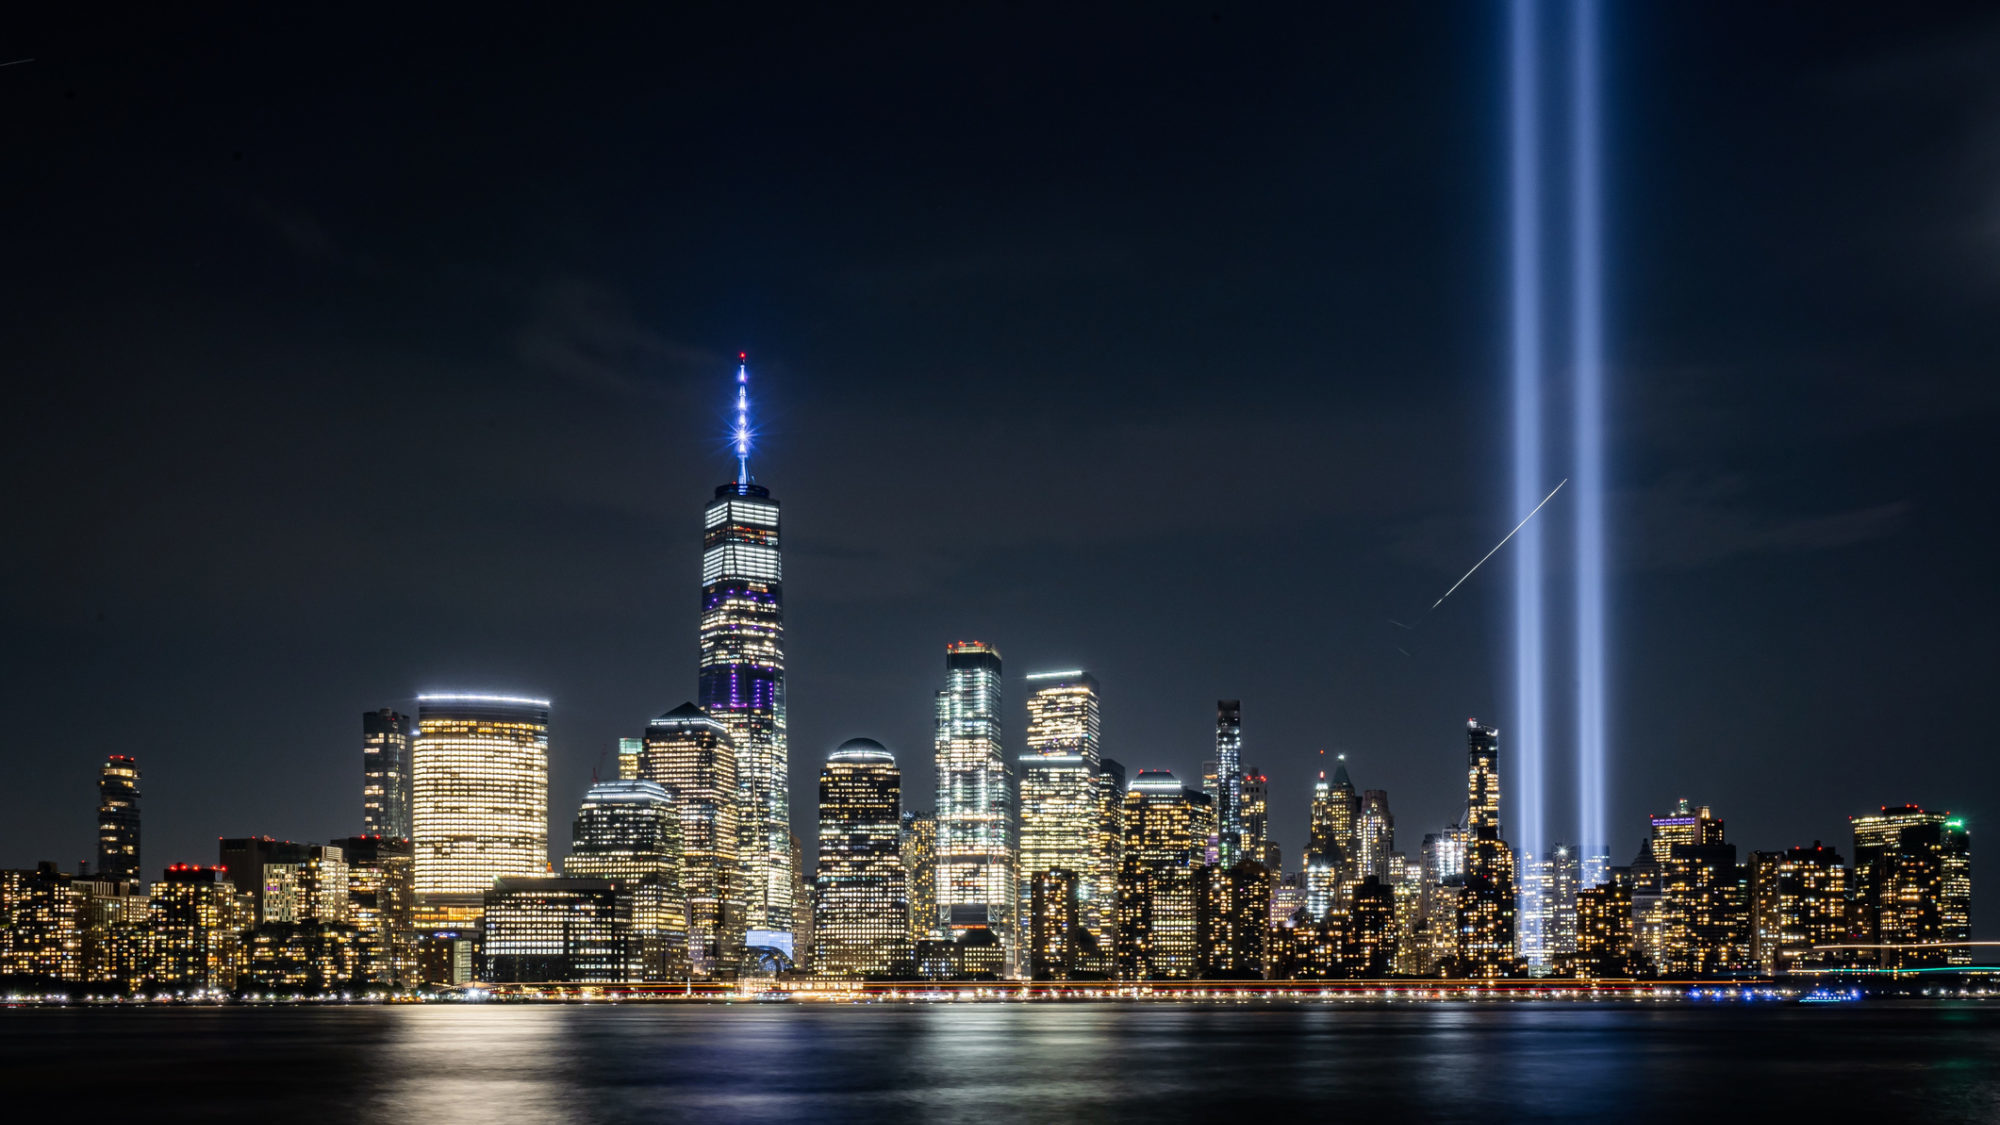 City lights on downtown Manhattan commemorate the loss of the Twin Towers on 9/11